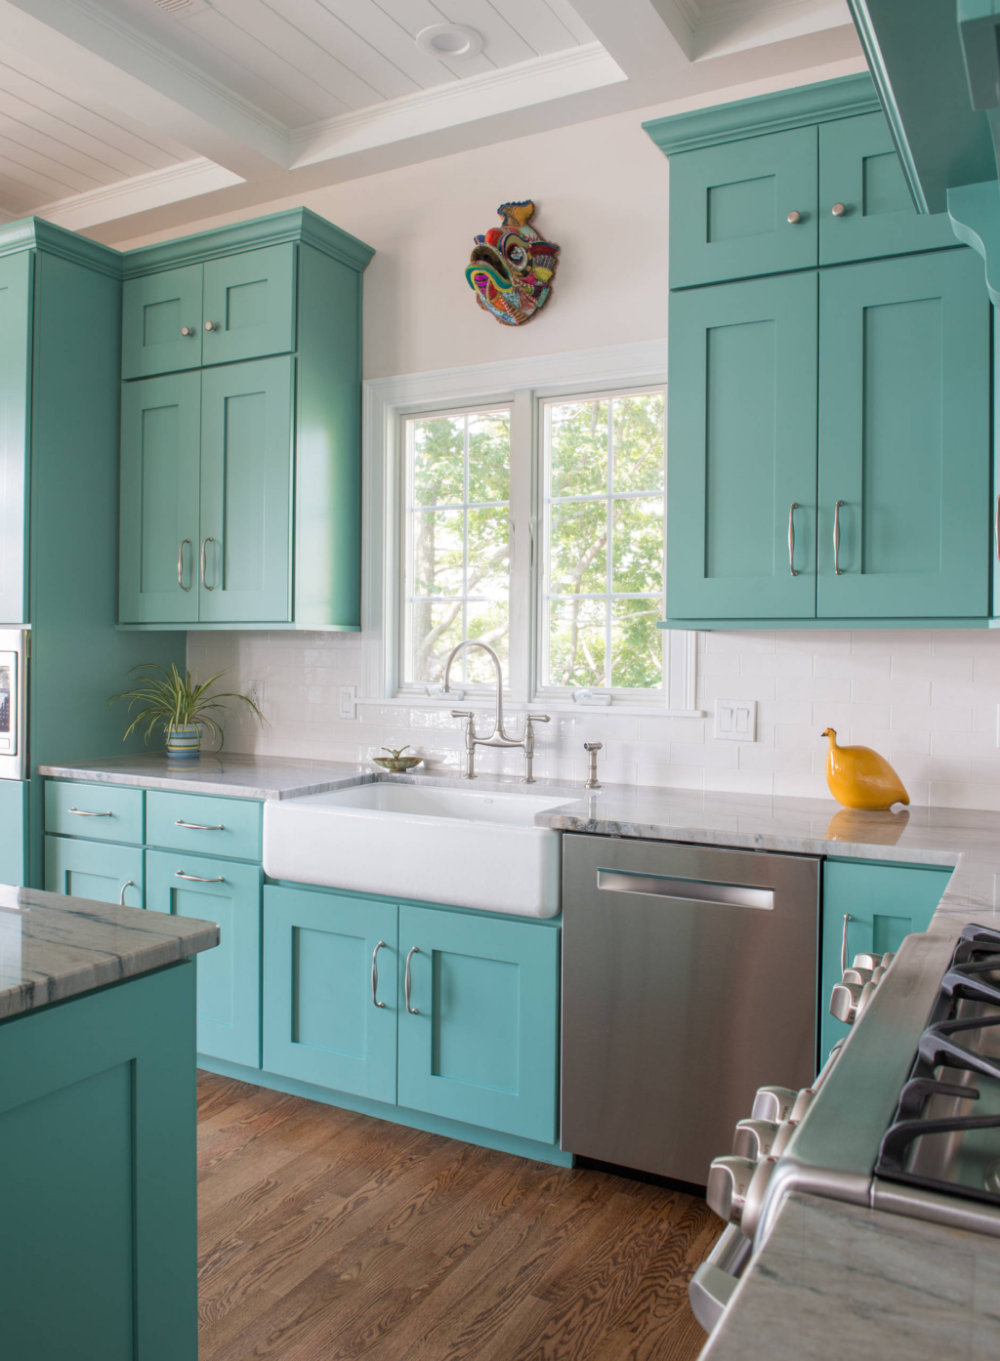 Mikayla Valois Riverhead Building Supply In 2020 Turquoise Kitchen Cabinets Teal Kitchen Cabinets Rustic Kitchen Design